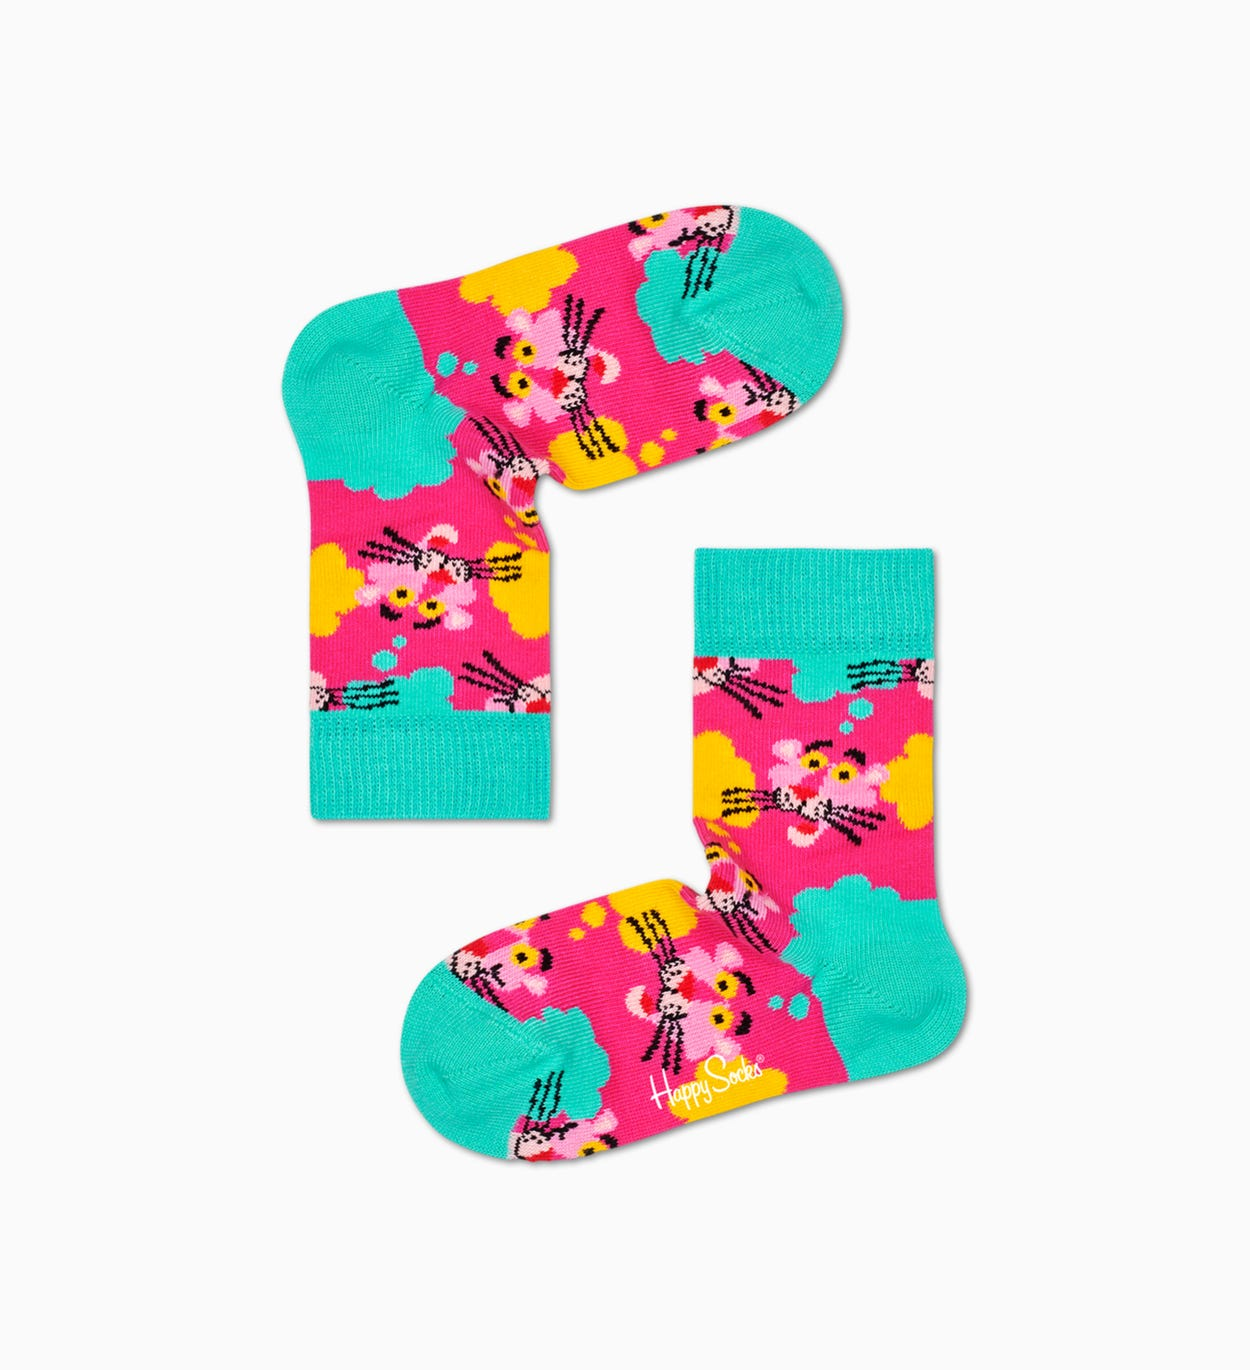 Happy Socks x Pink Panther: Chaussettes Enfants Think Pink